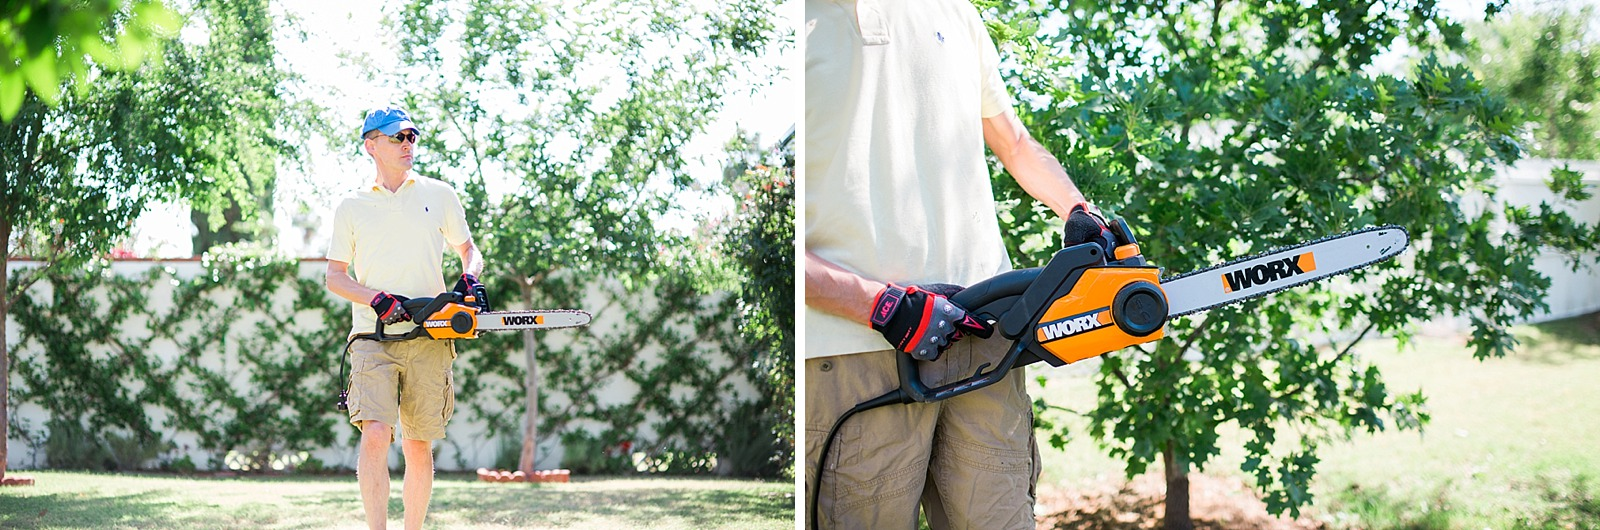 worx-chain-saw-review-111